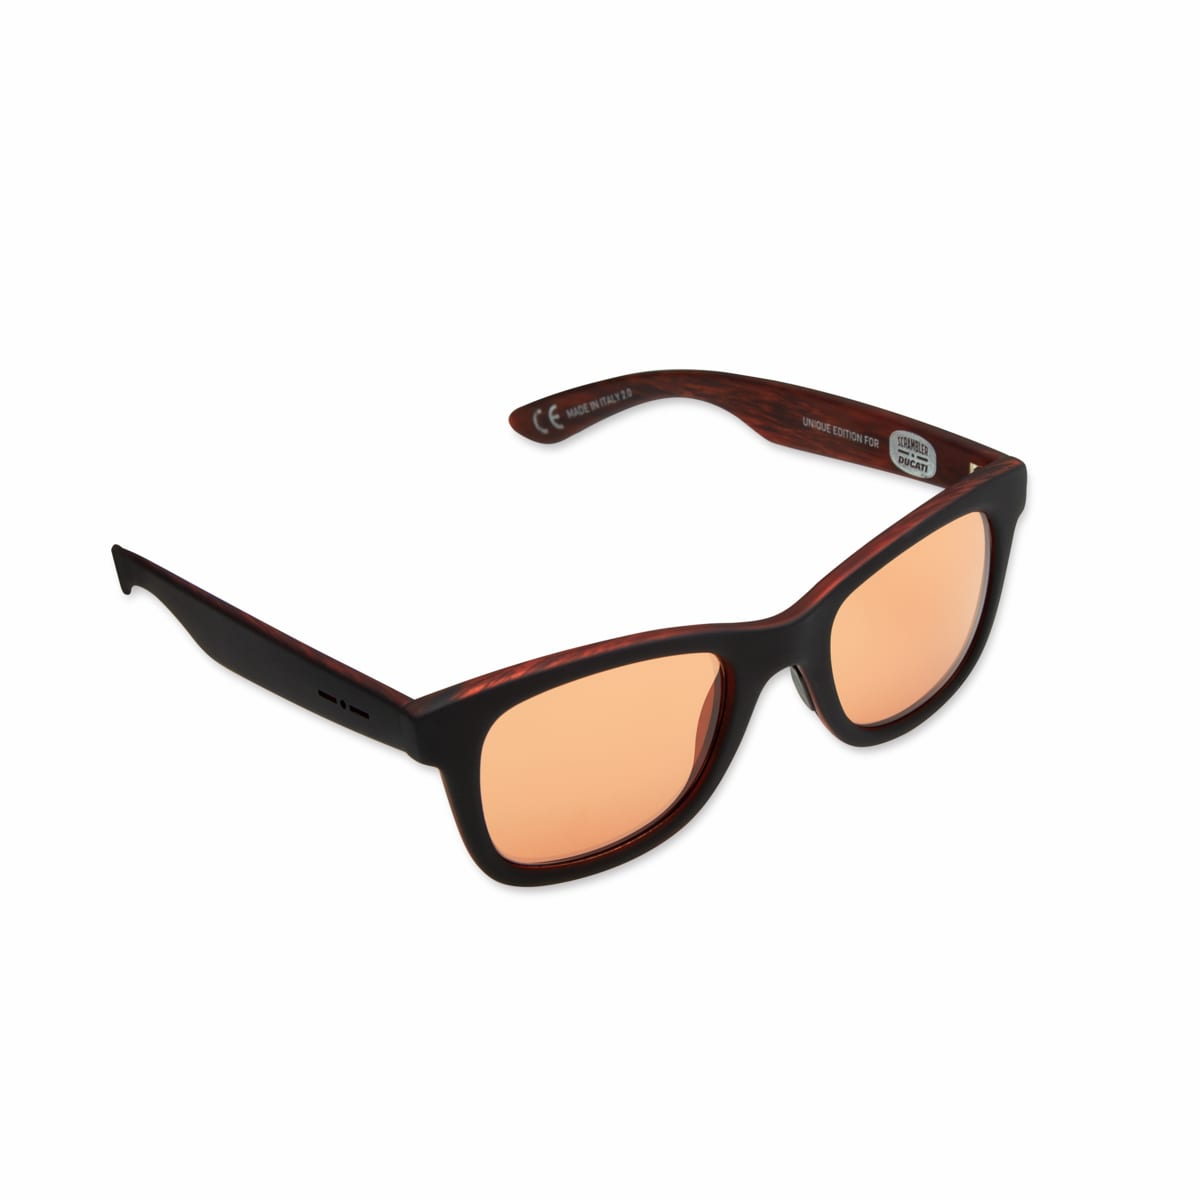 3906243f2b Copper - Sunglasses